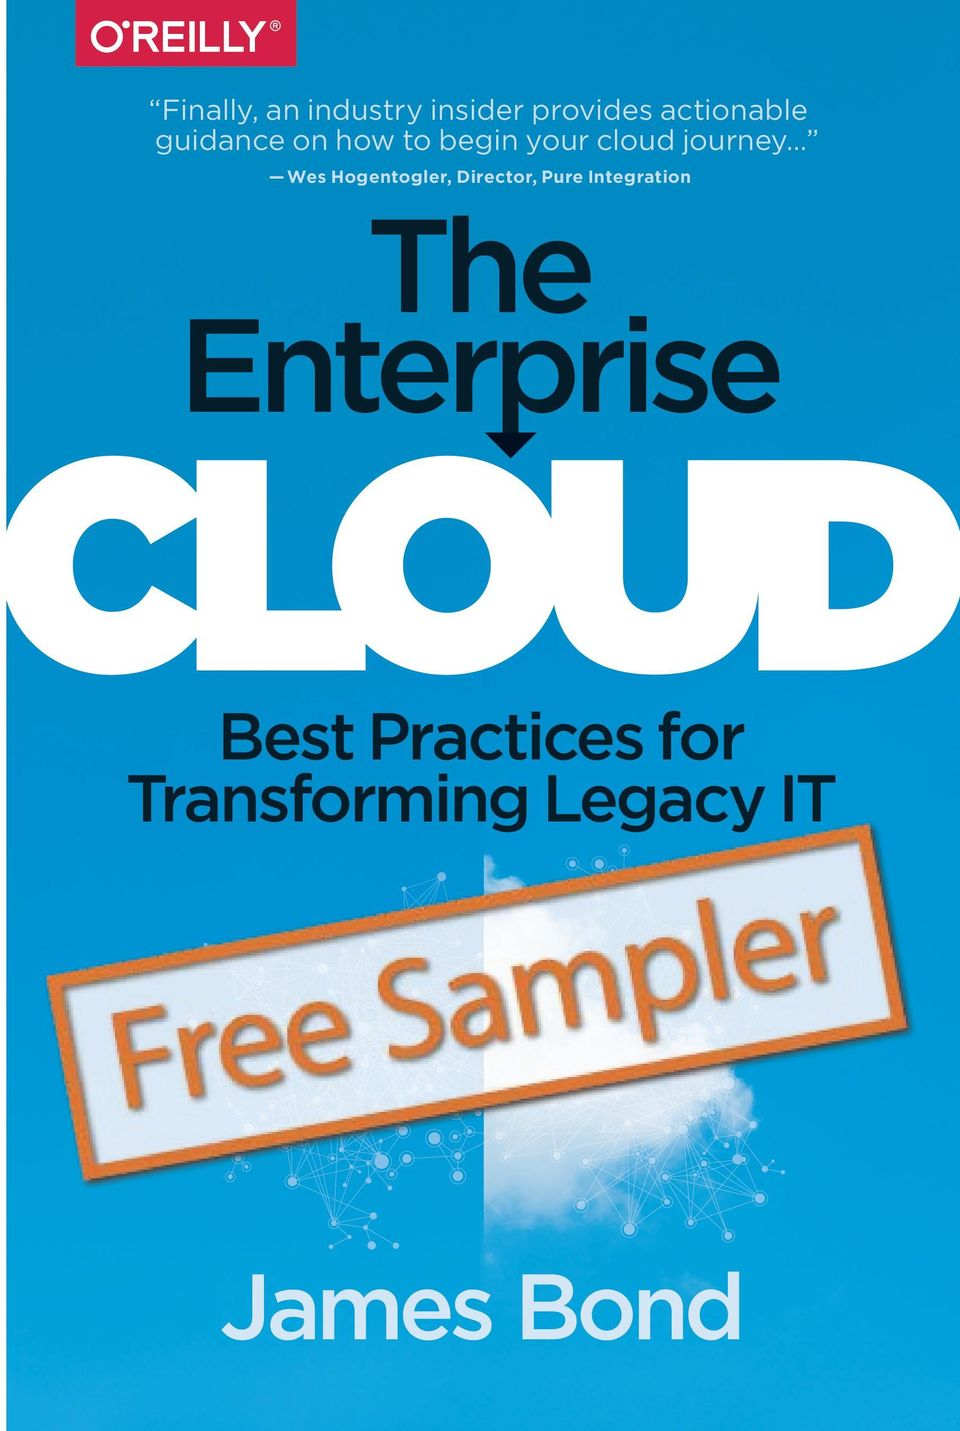 If you re planning your long-term cloud strategy, this practical book provides insider knowledge and real-world lessons regarding planning, design, operations, security, and application